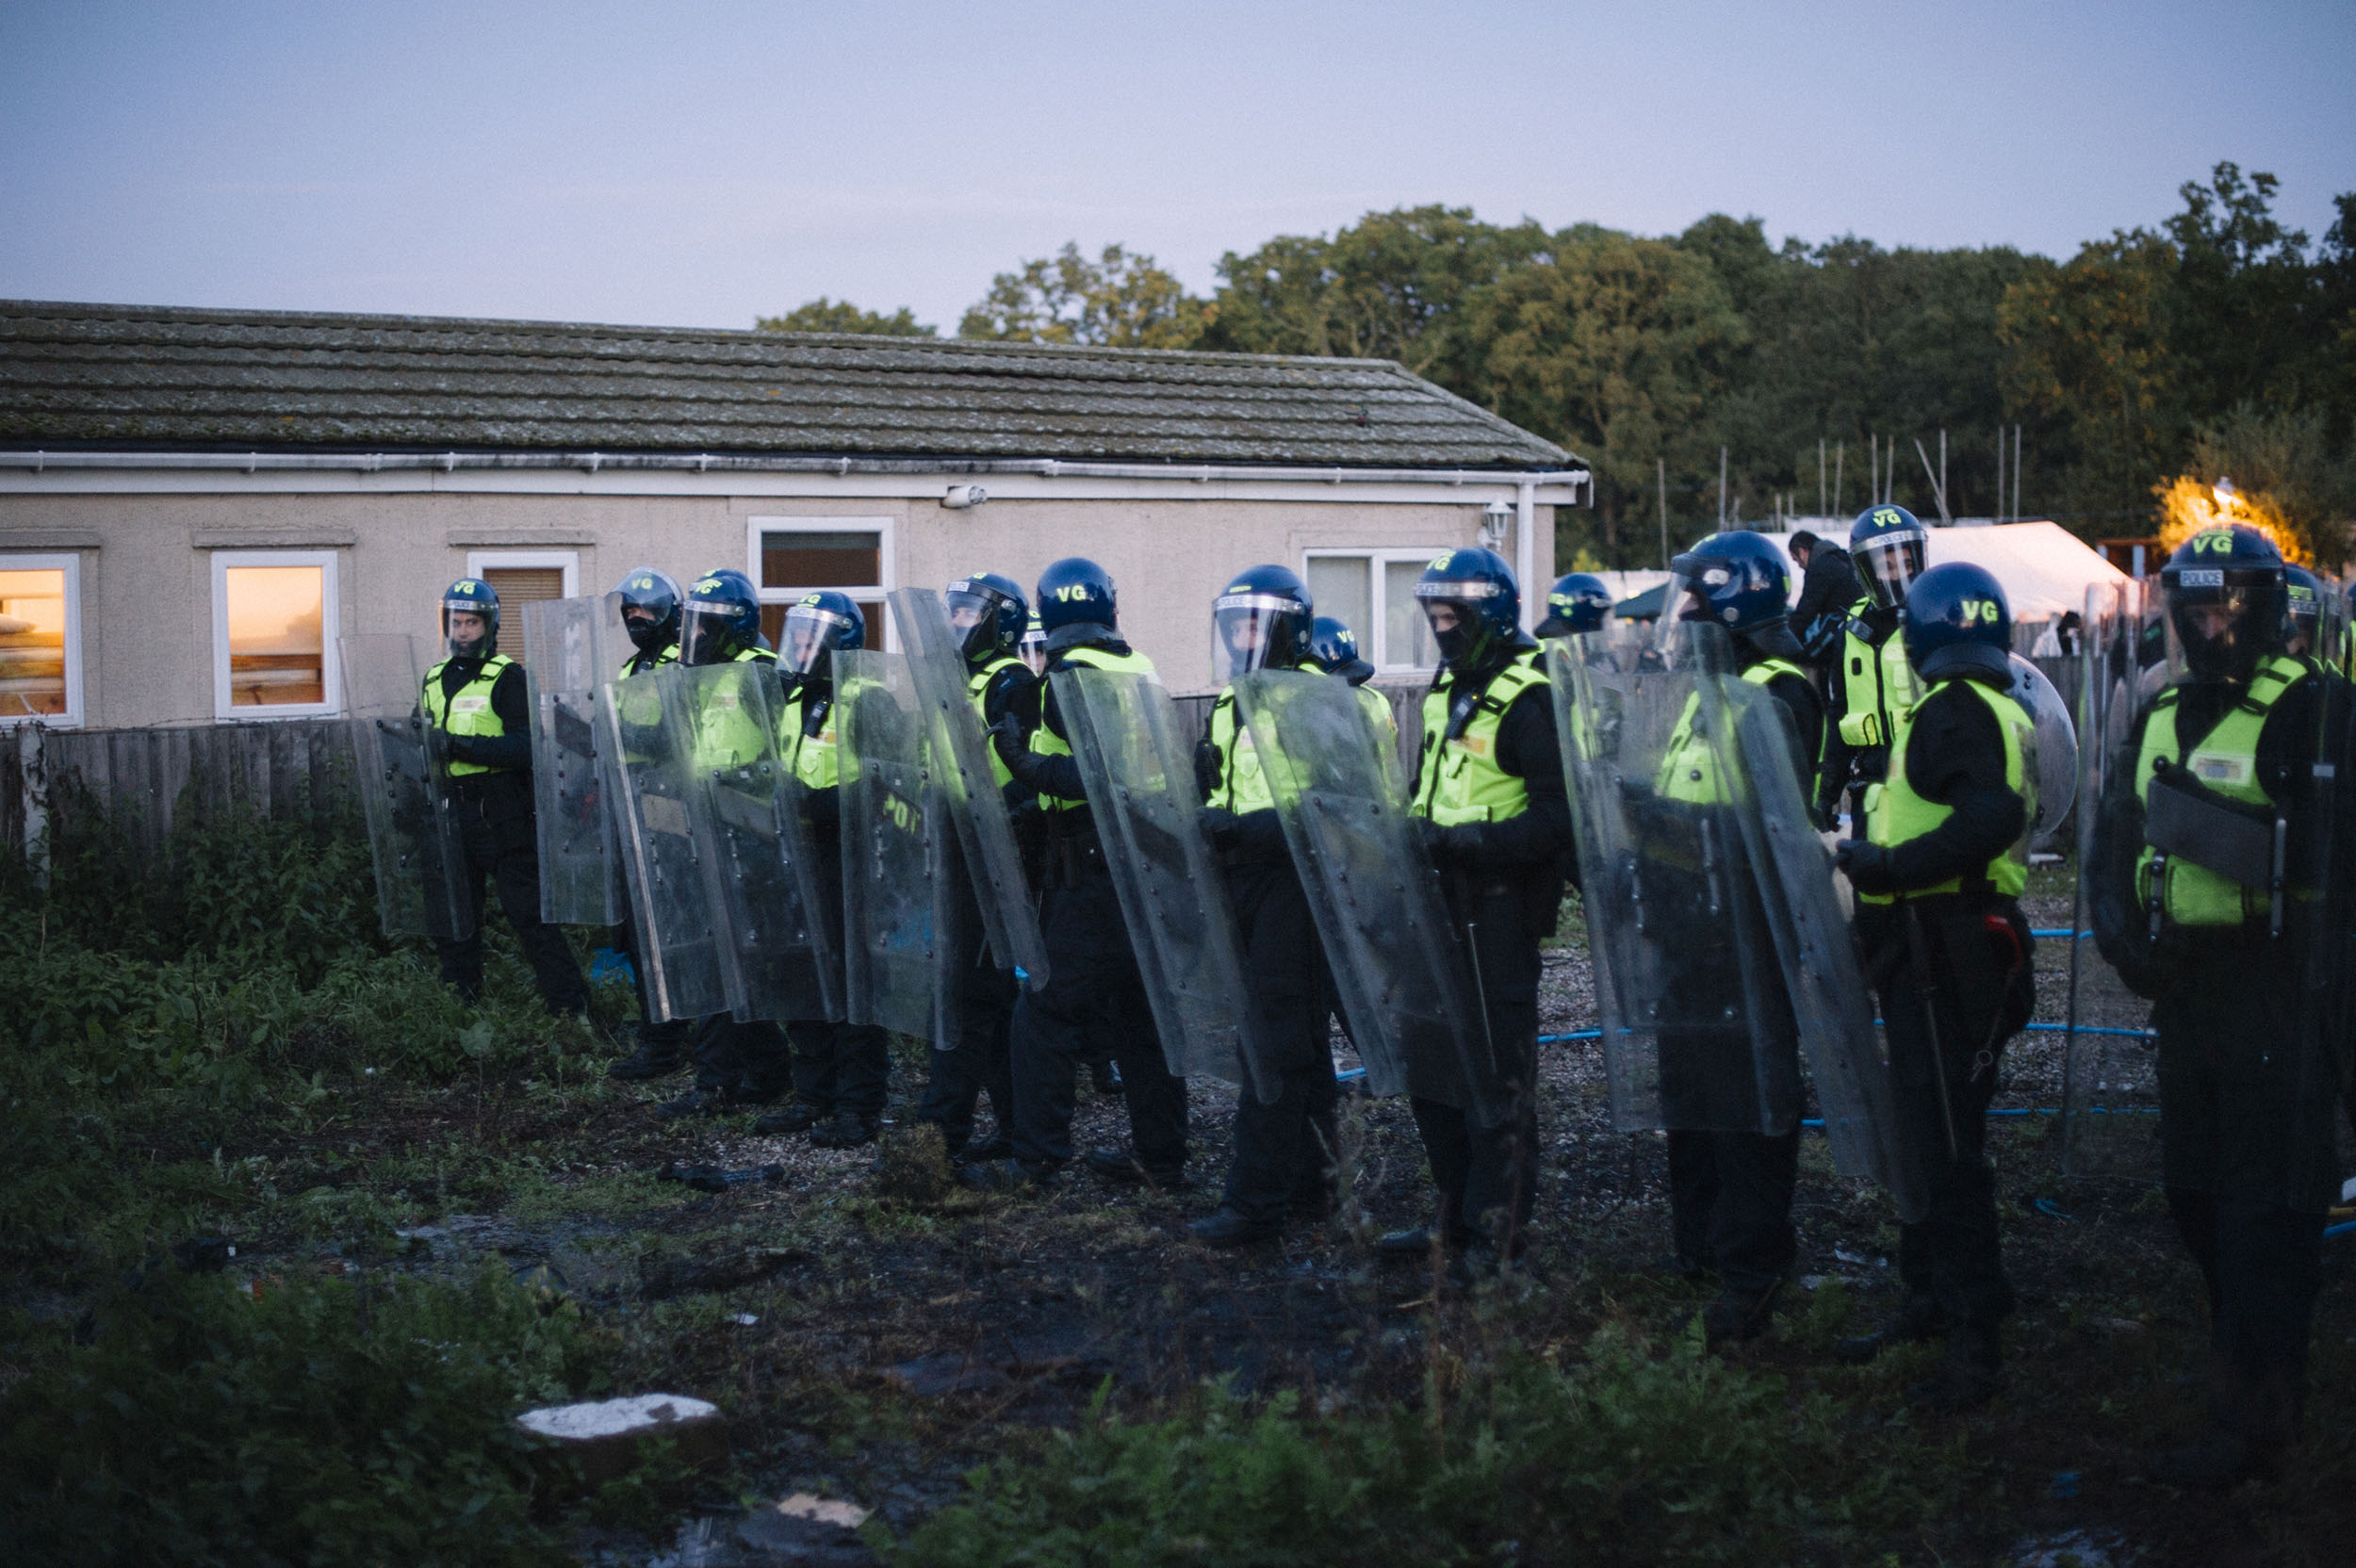 Police congregate inside Dale Farm, forming protective barriers behind their shields.